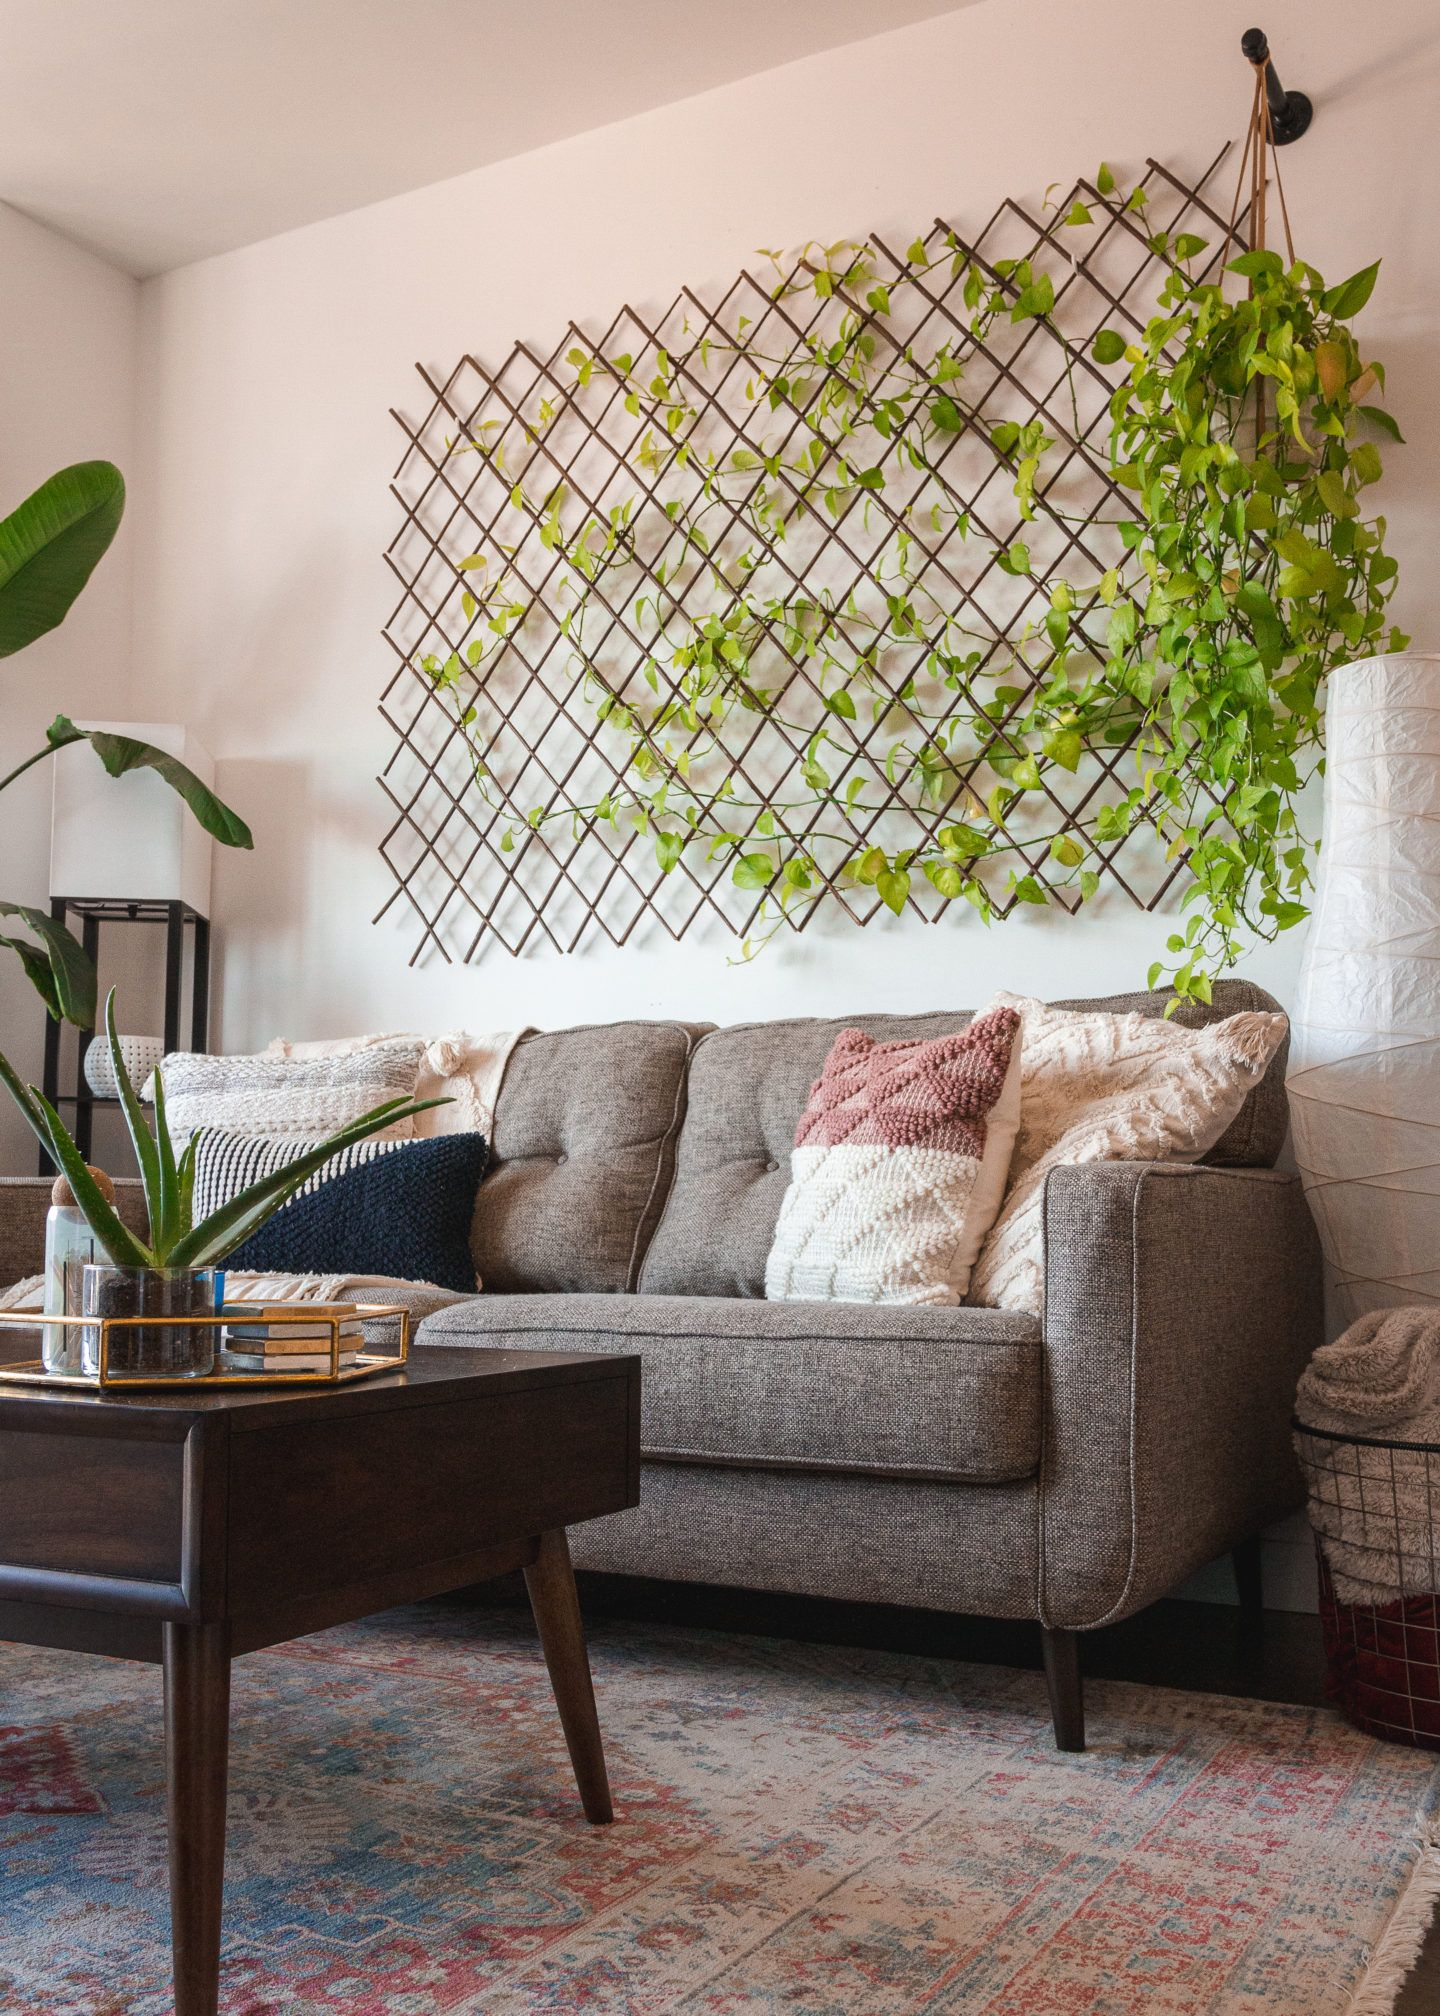 Brooklyn Apartment Tour | Furniture, Decor + House Plants - theIncogneatist